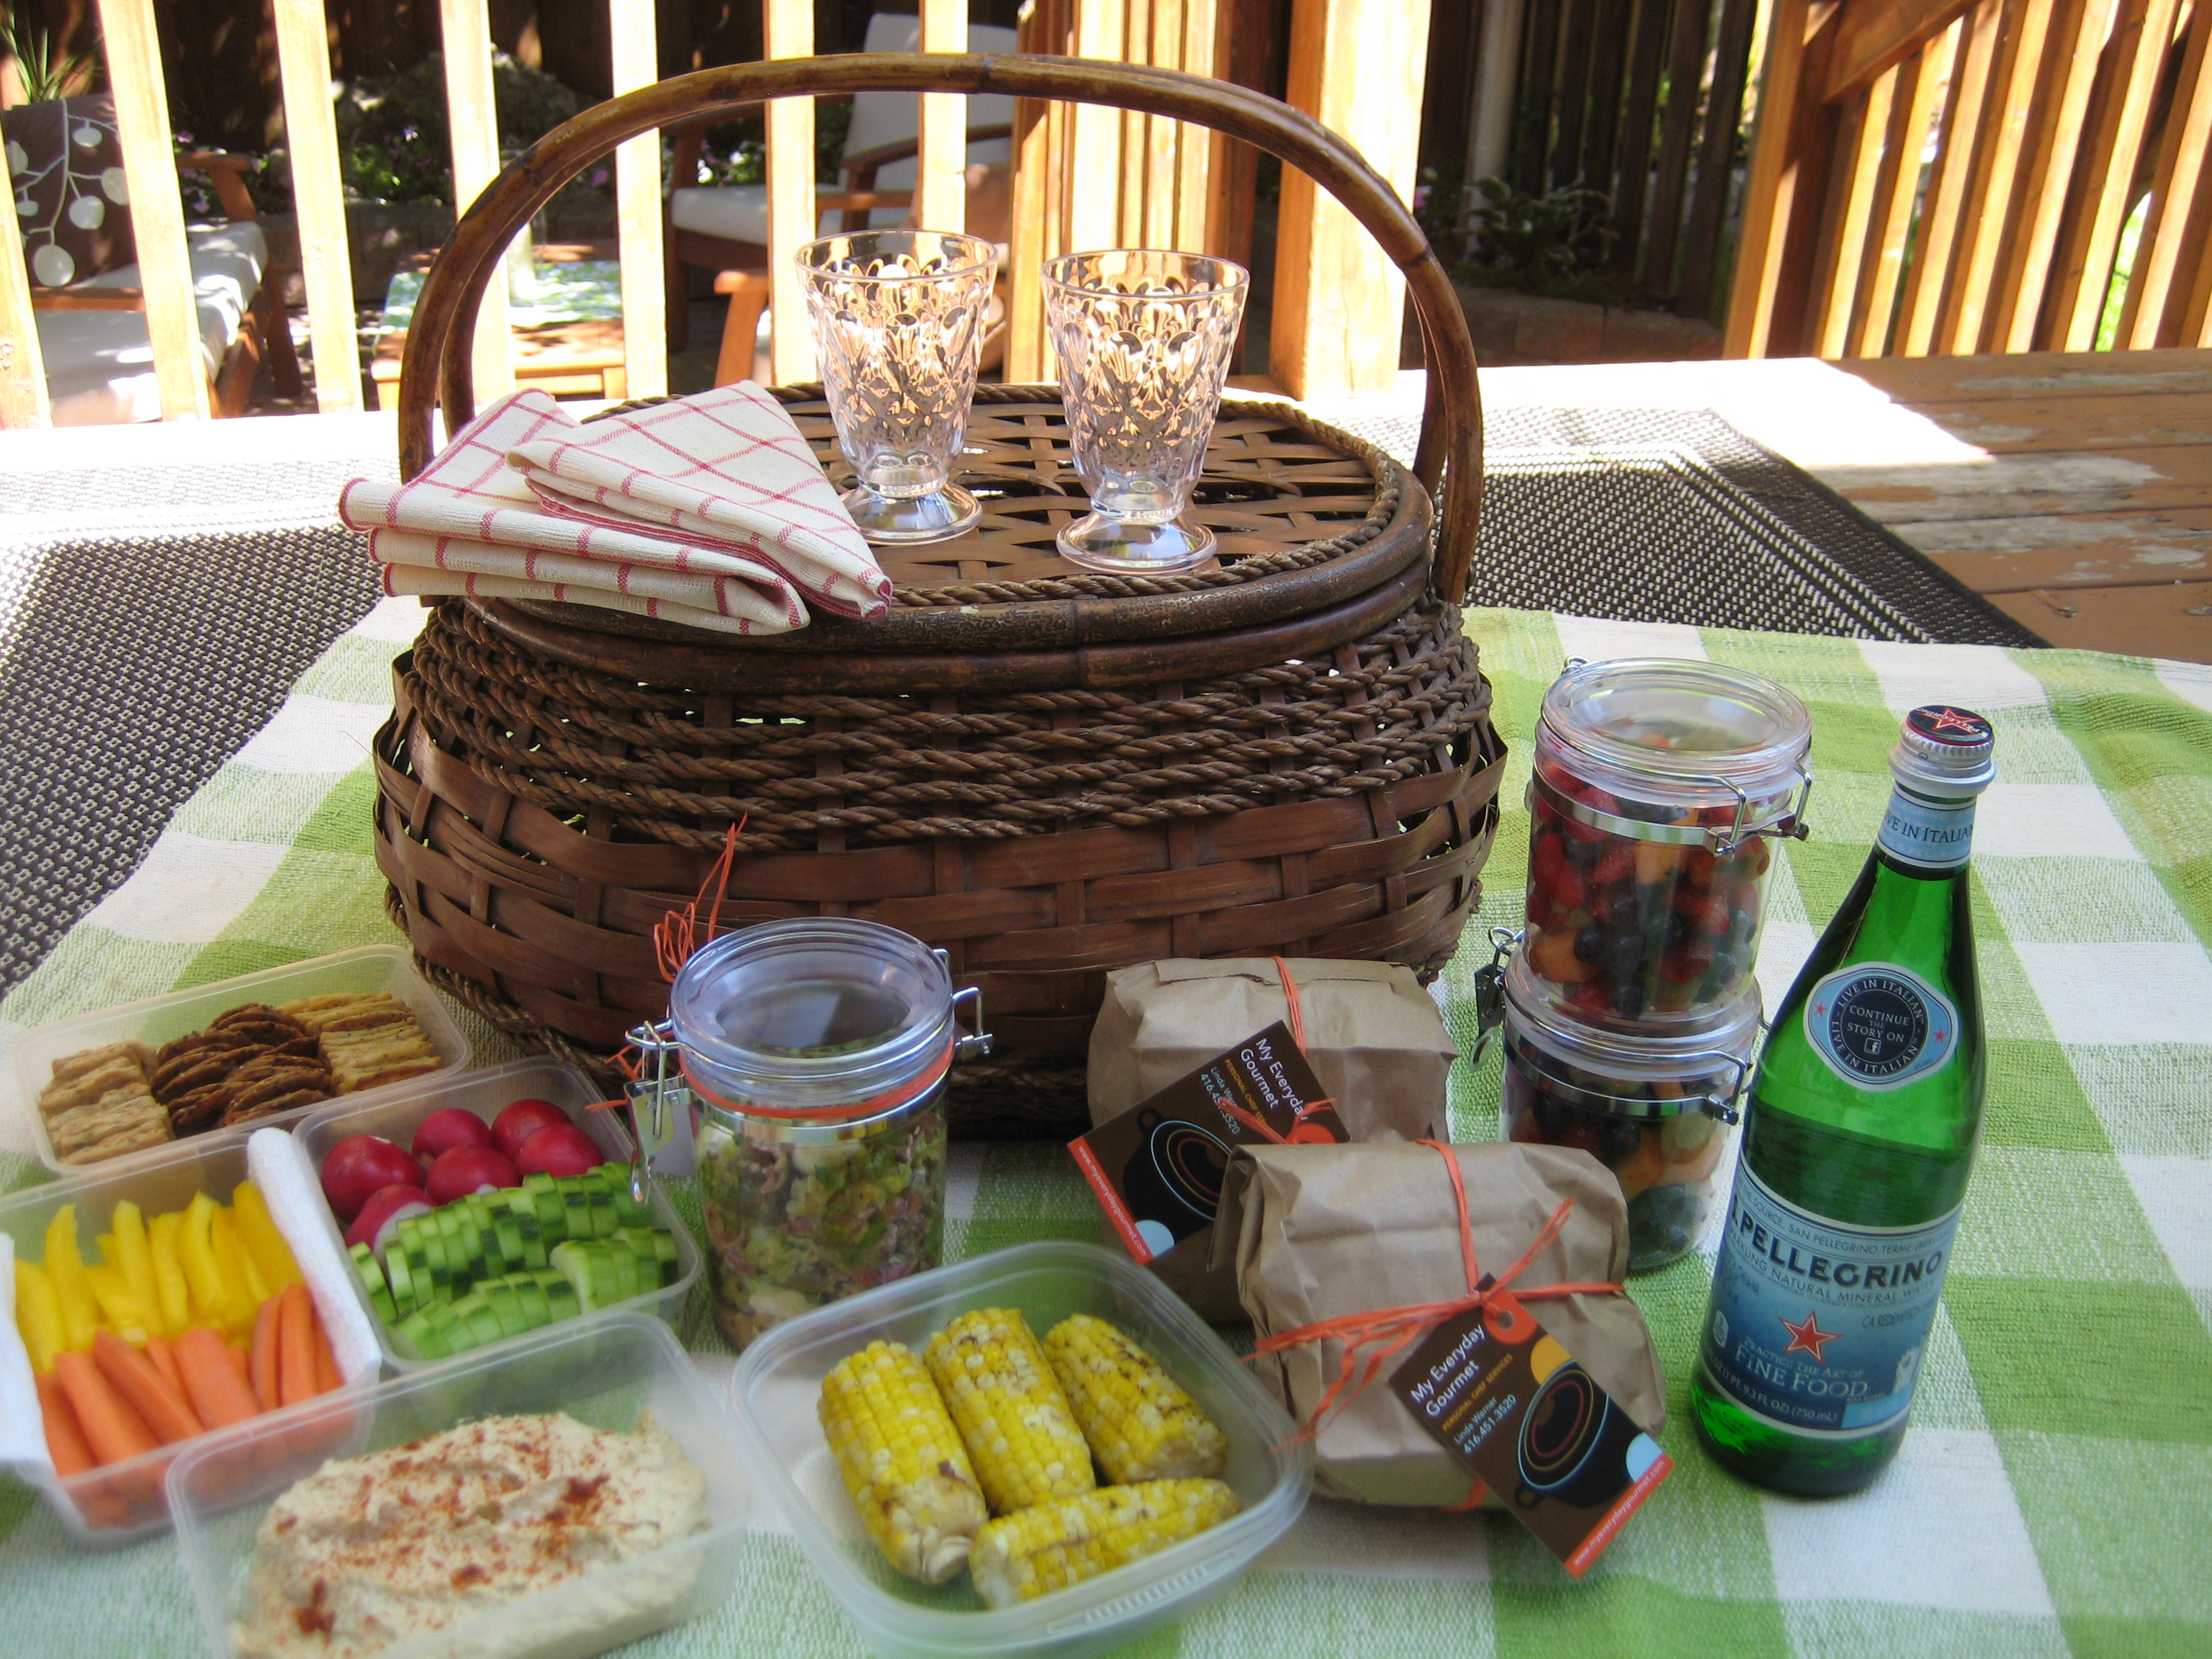 Picnic Basket Food : Toronto picnic basket food meal service from personal